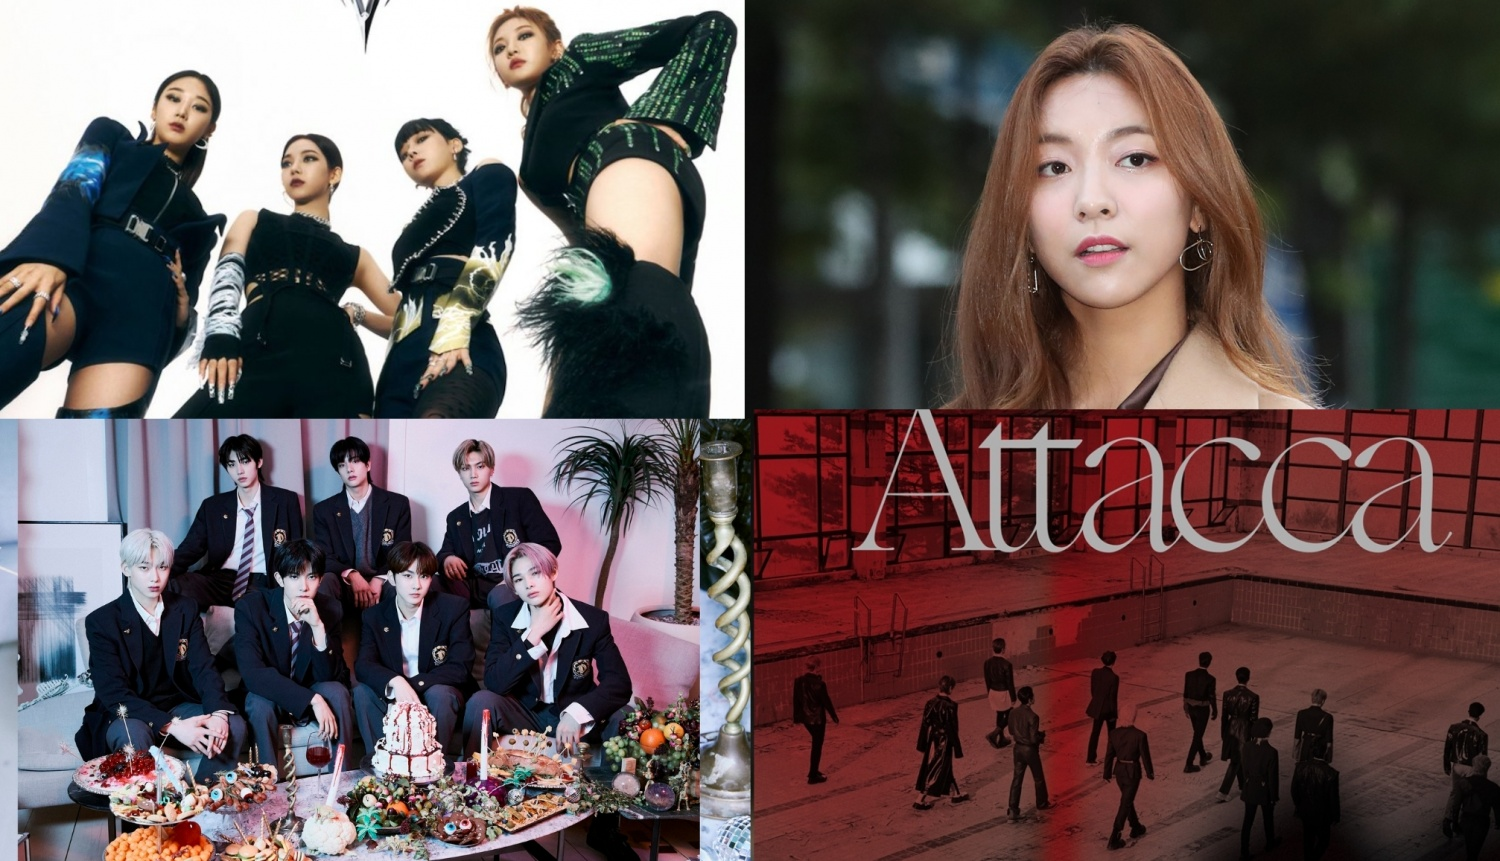 aespa, ENHYPEN, f(x) Luna, & More Join the October Comeback Lineup: Which Release Do You Anticipate the Most?